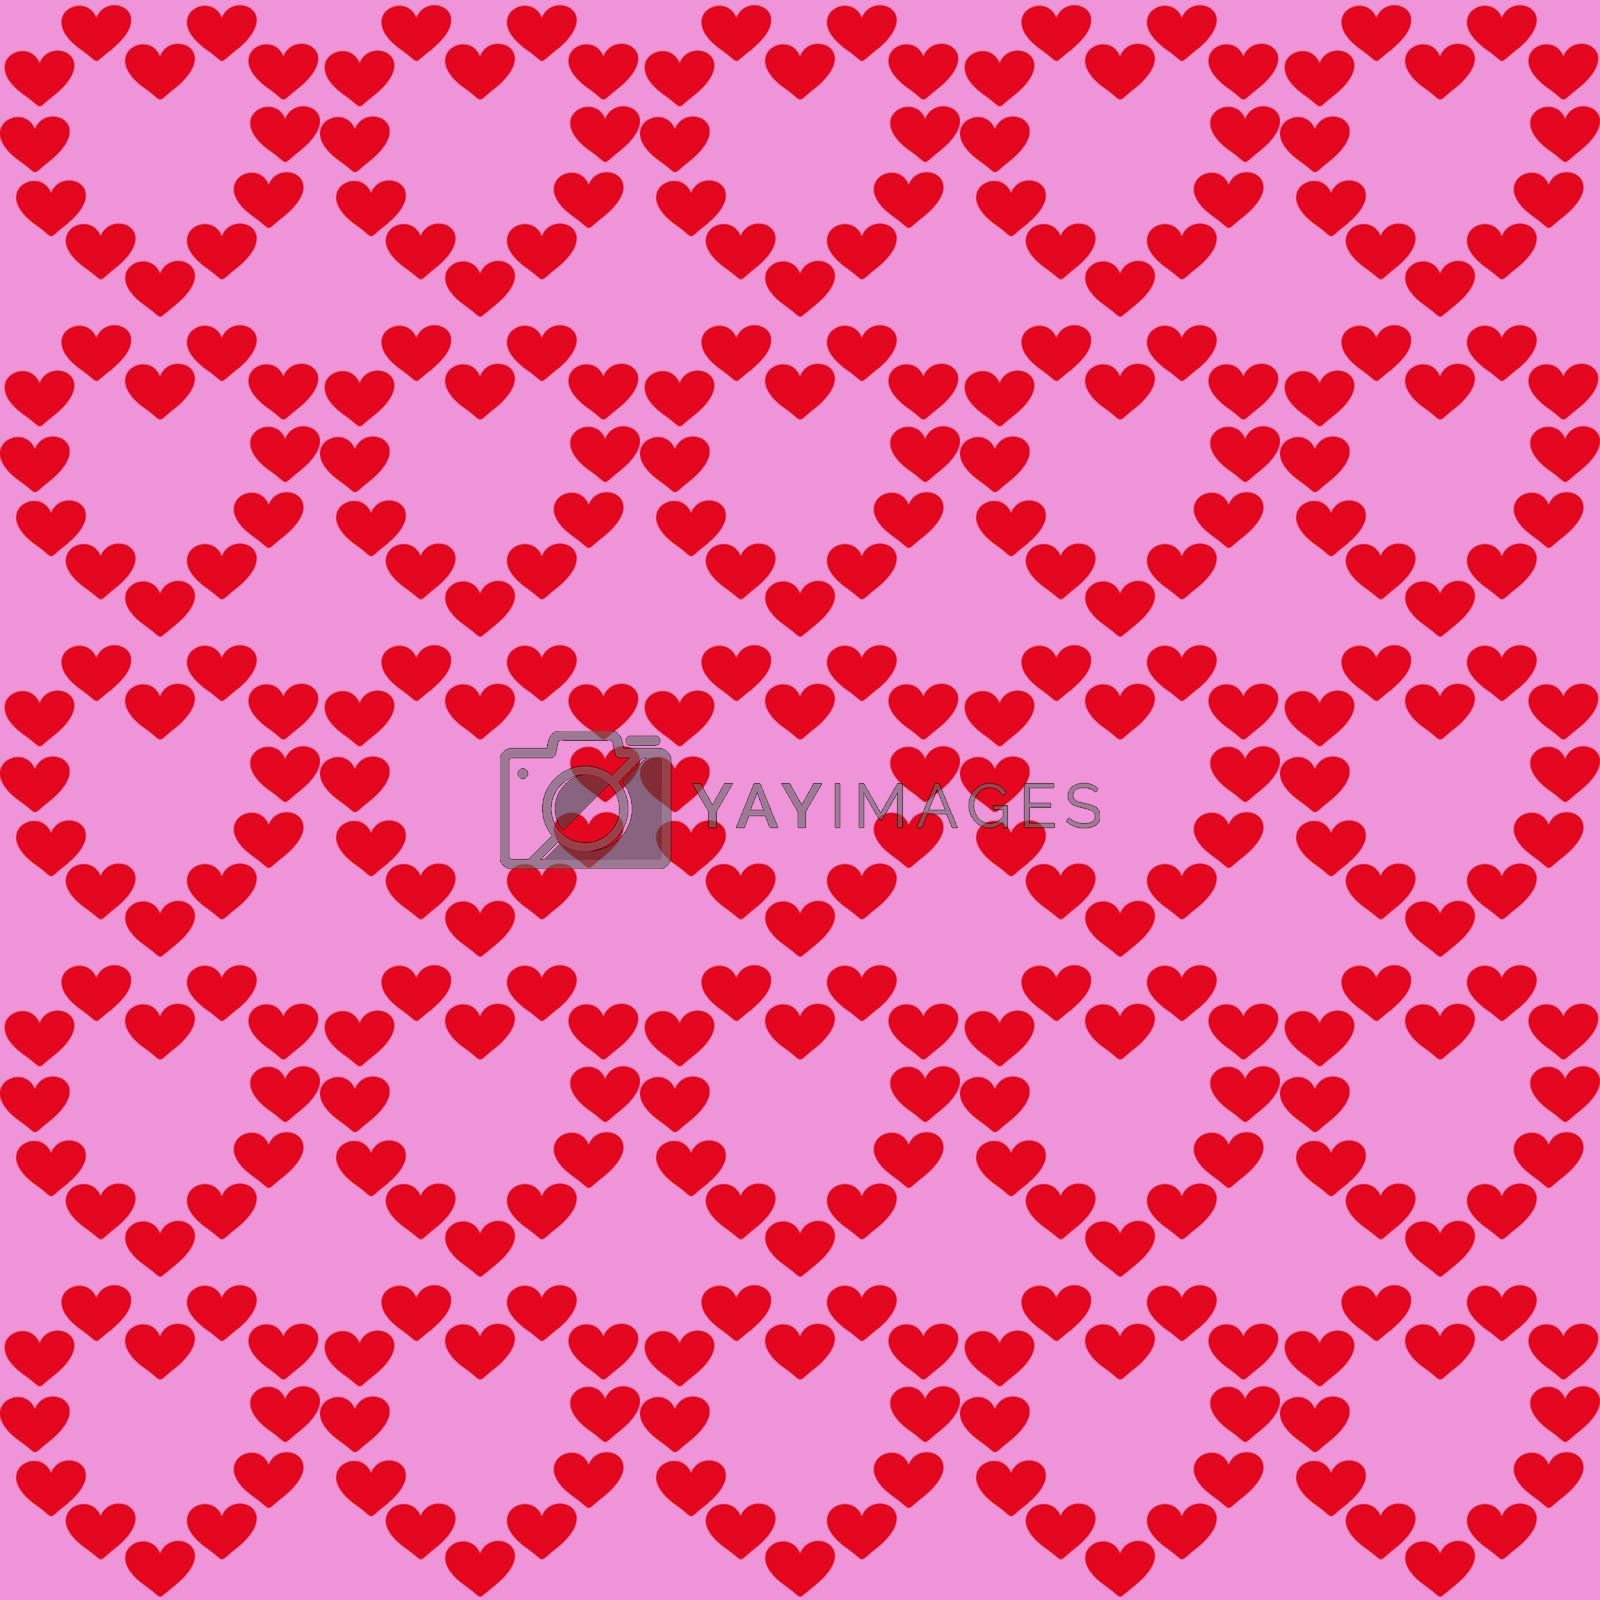 Background from hearts. Red hearts on a pink background.